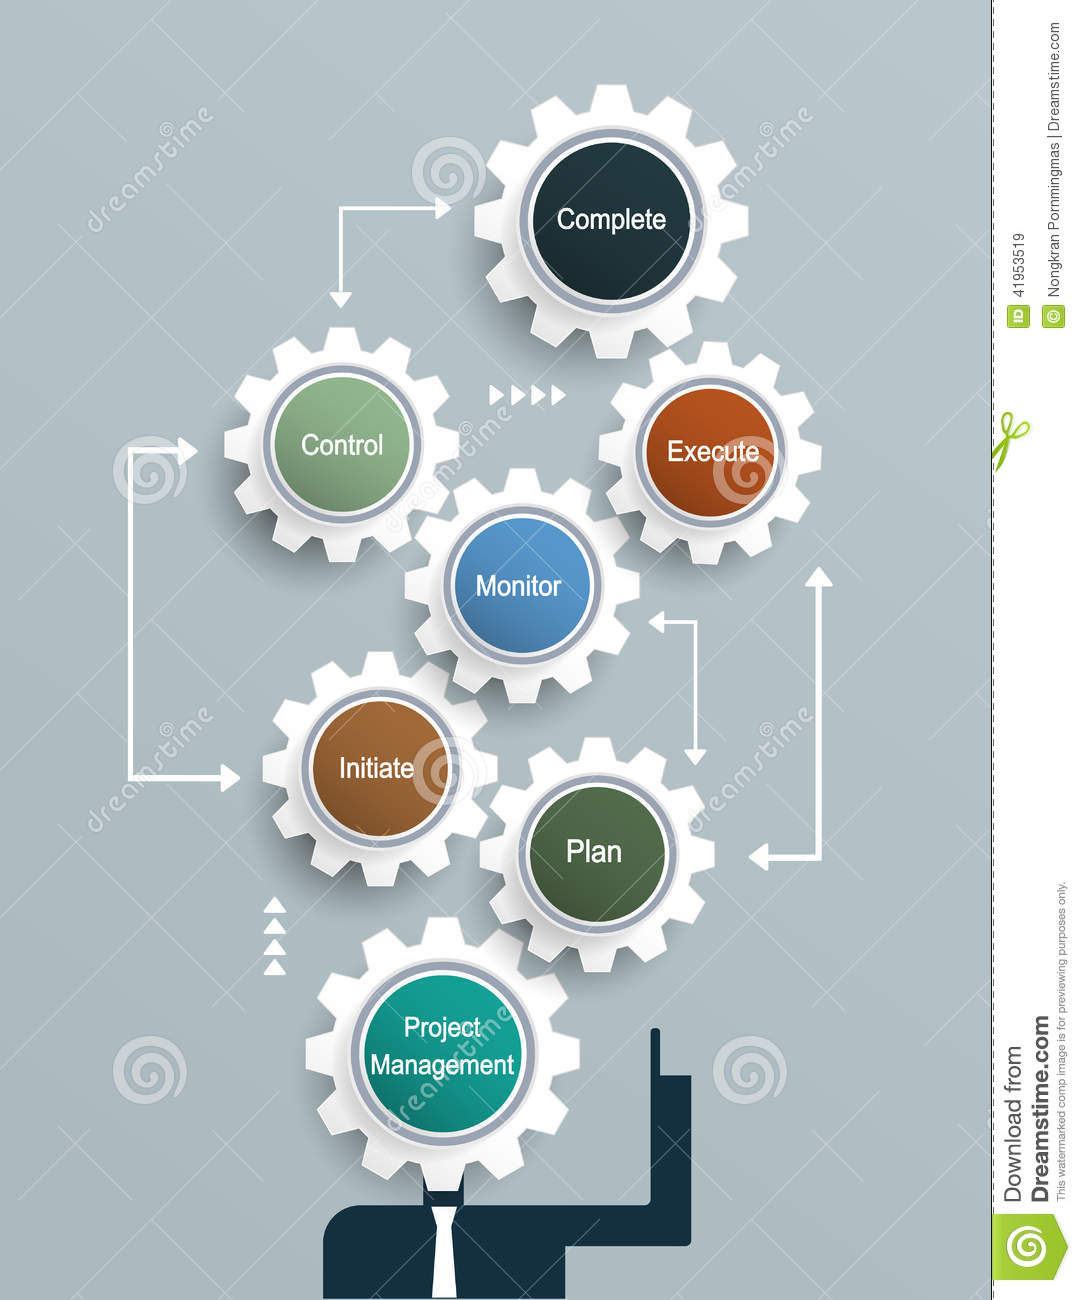 Project Management Plan Gears Infographics Vector Image – Project Management Plan